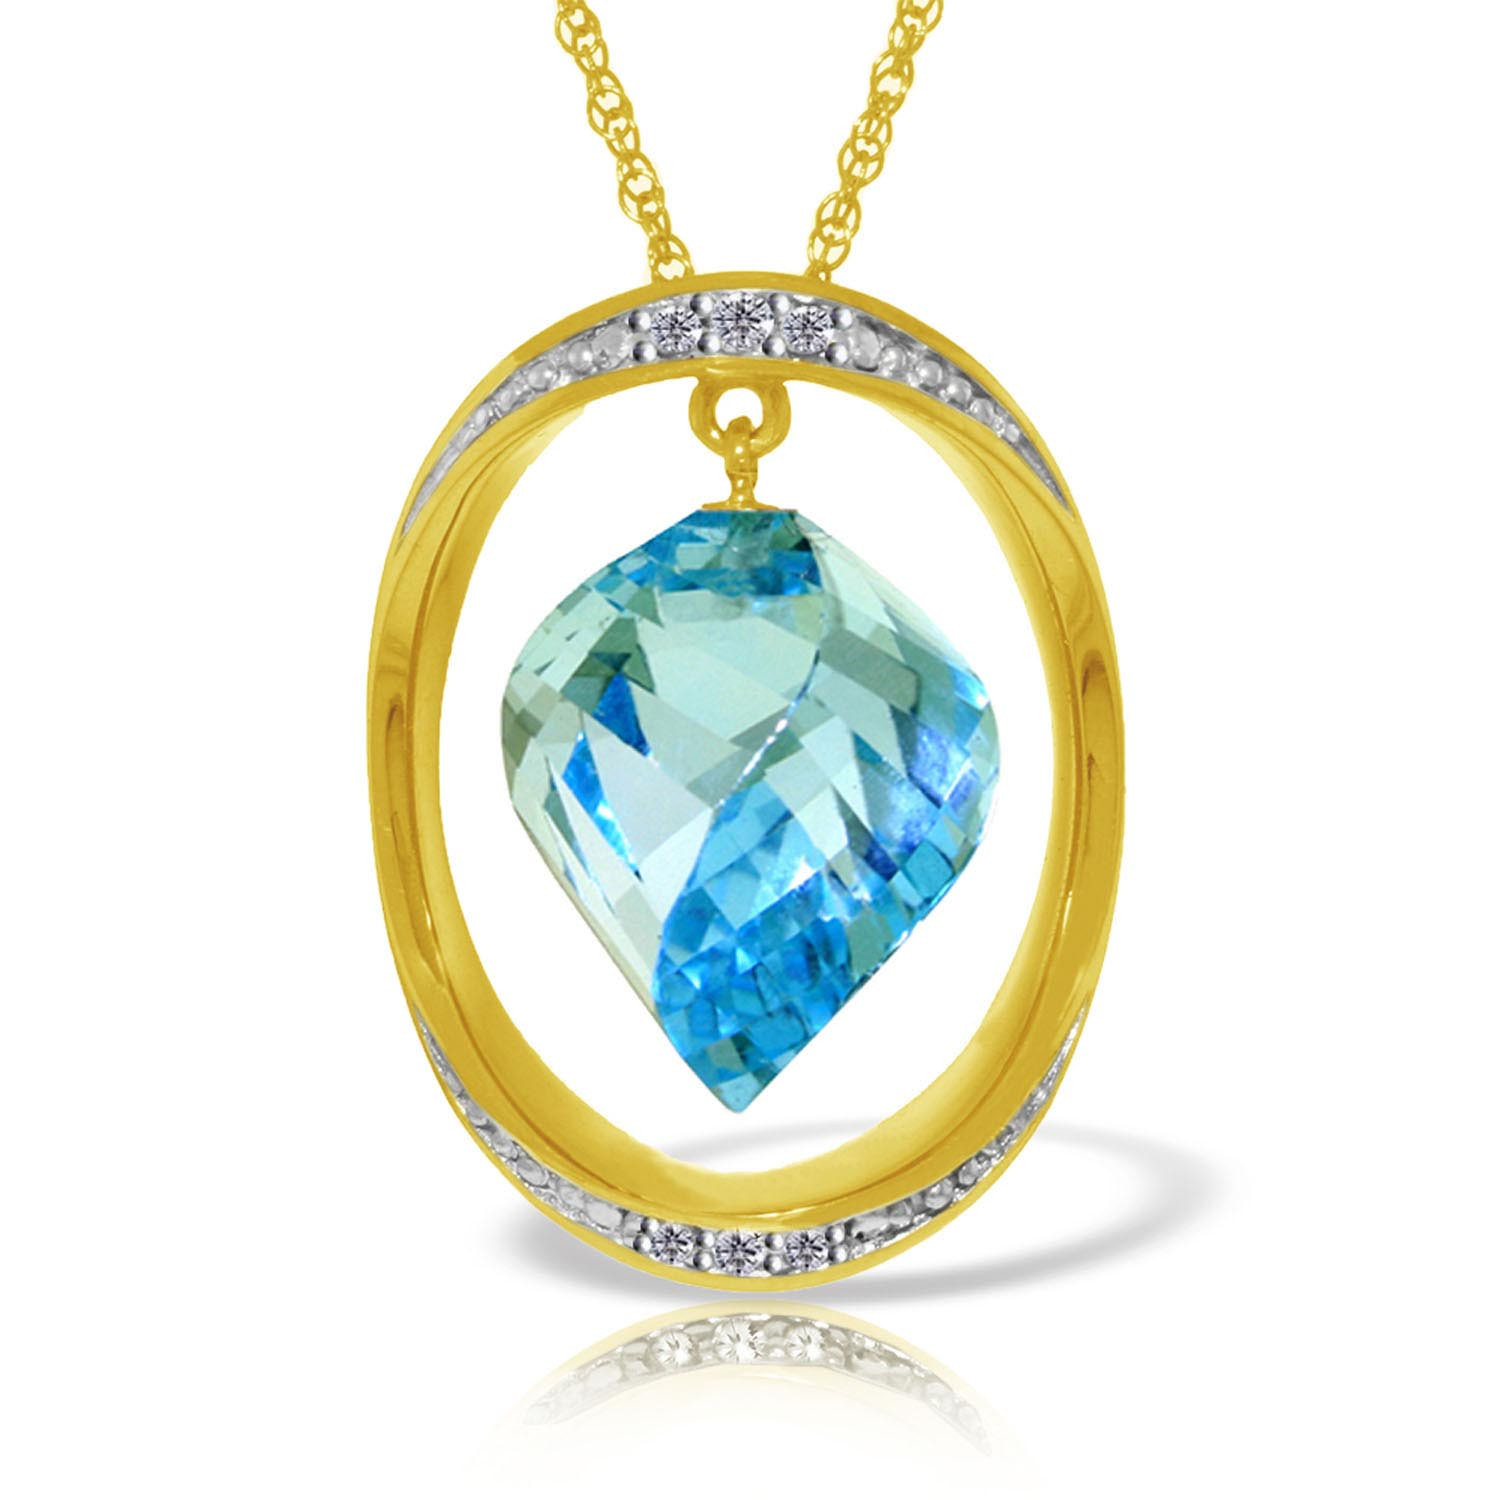 Blue Topaz & Diamond Pendant Necklace in 9ct Gold